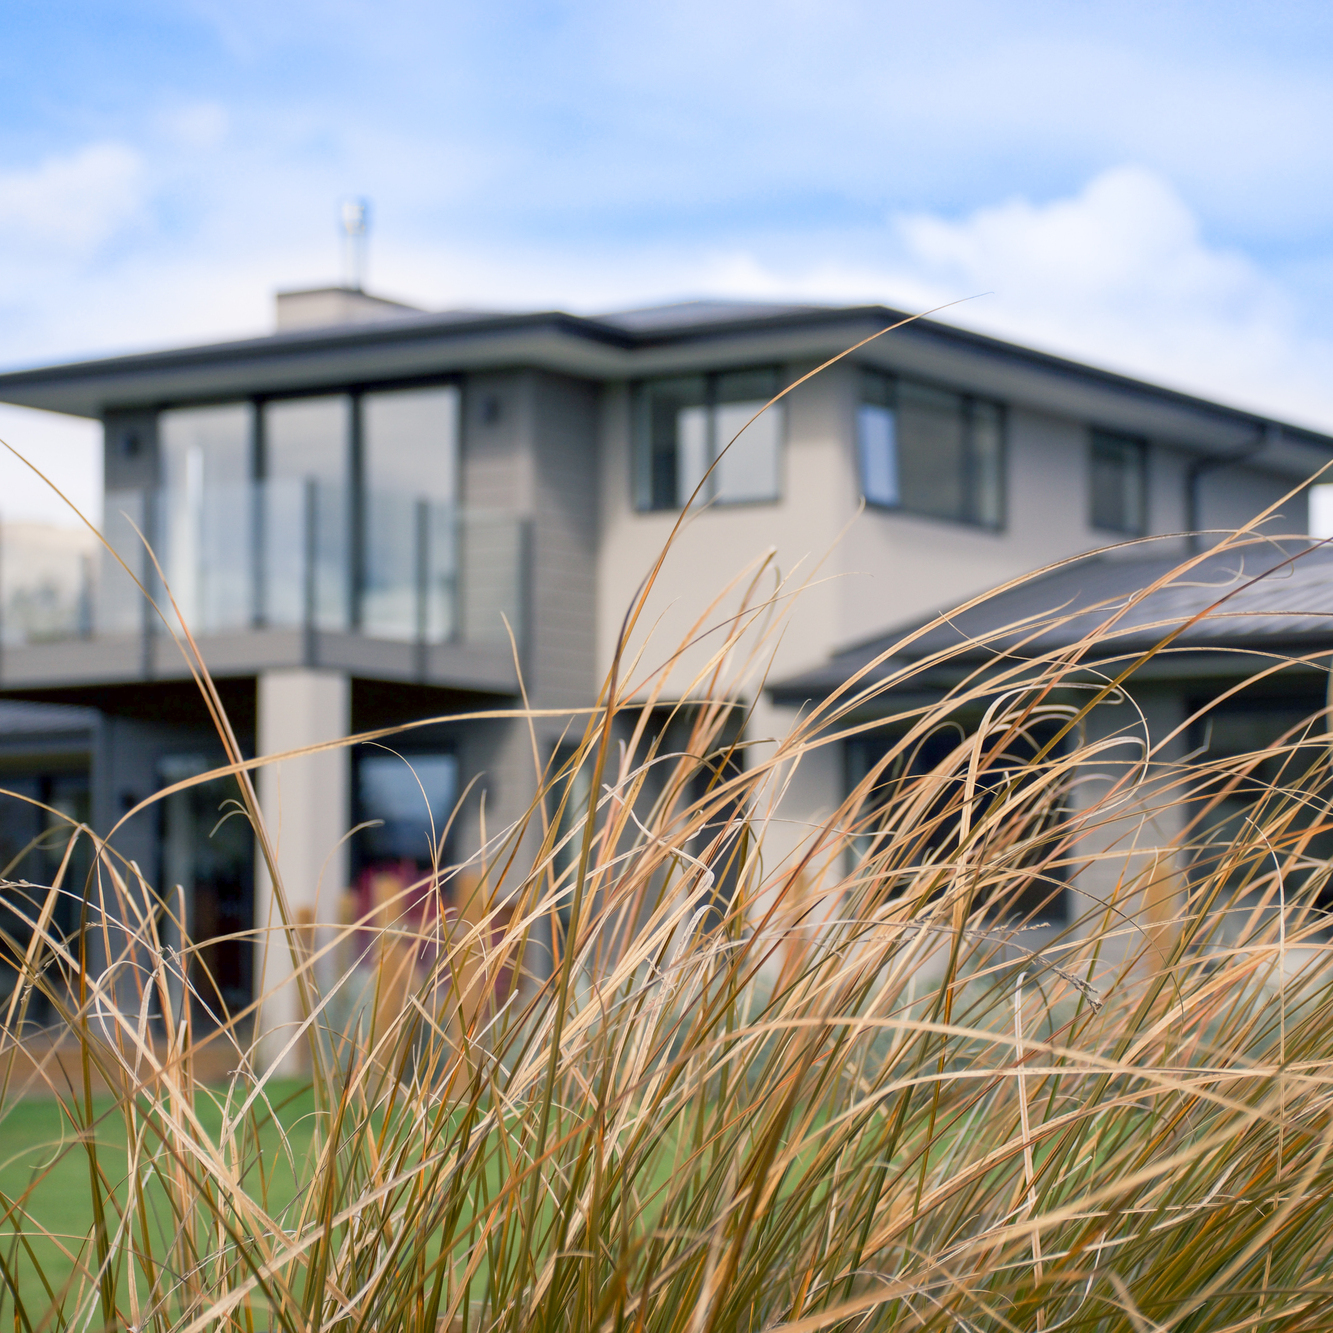 Stay 5 nights pay for 4 nights in Wanaka at Copper Beech Luxury Accommodation